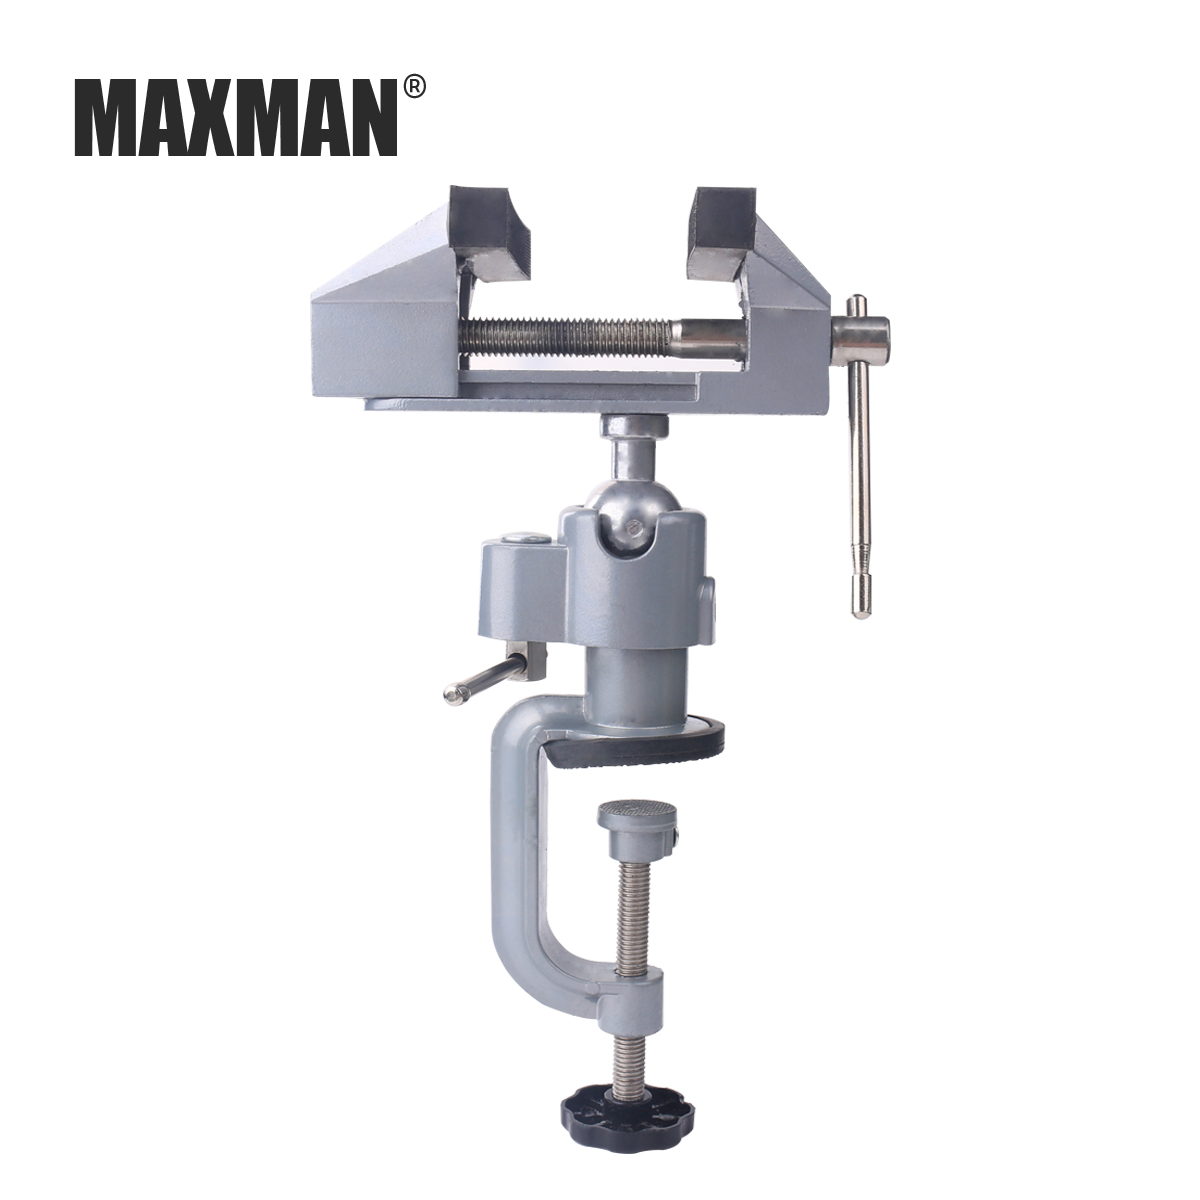 MAXMAN Bench Vise Aluminum 75mm Table Screw Vise Bench Clamp Screw Vise for DIY Craft Mold Fixed Repair Tool цена